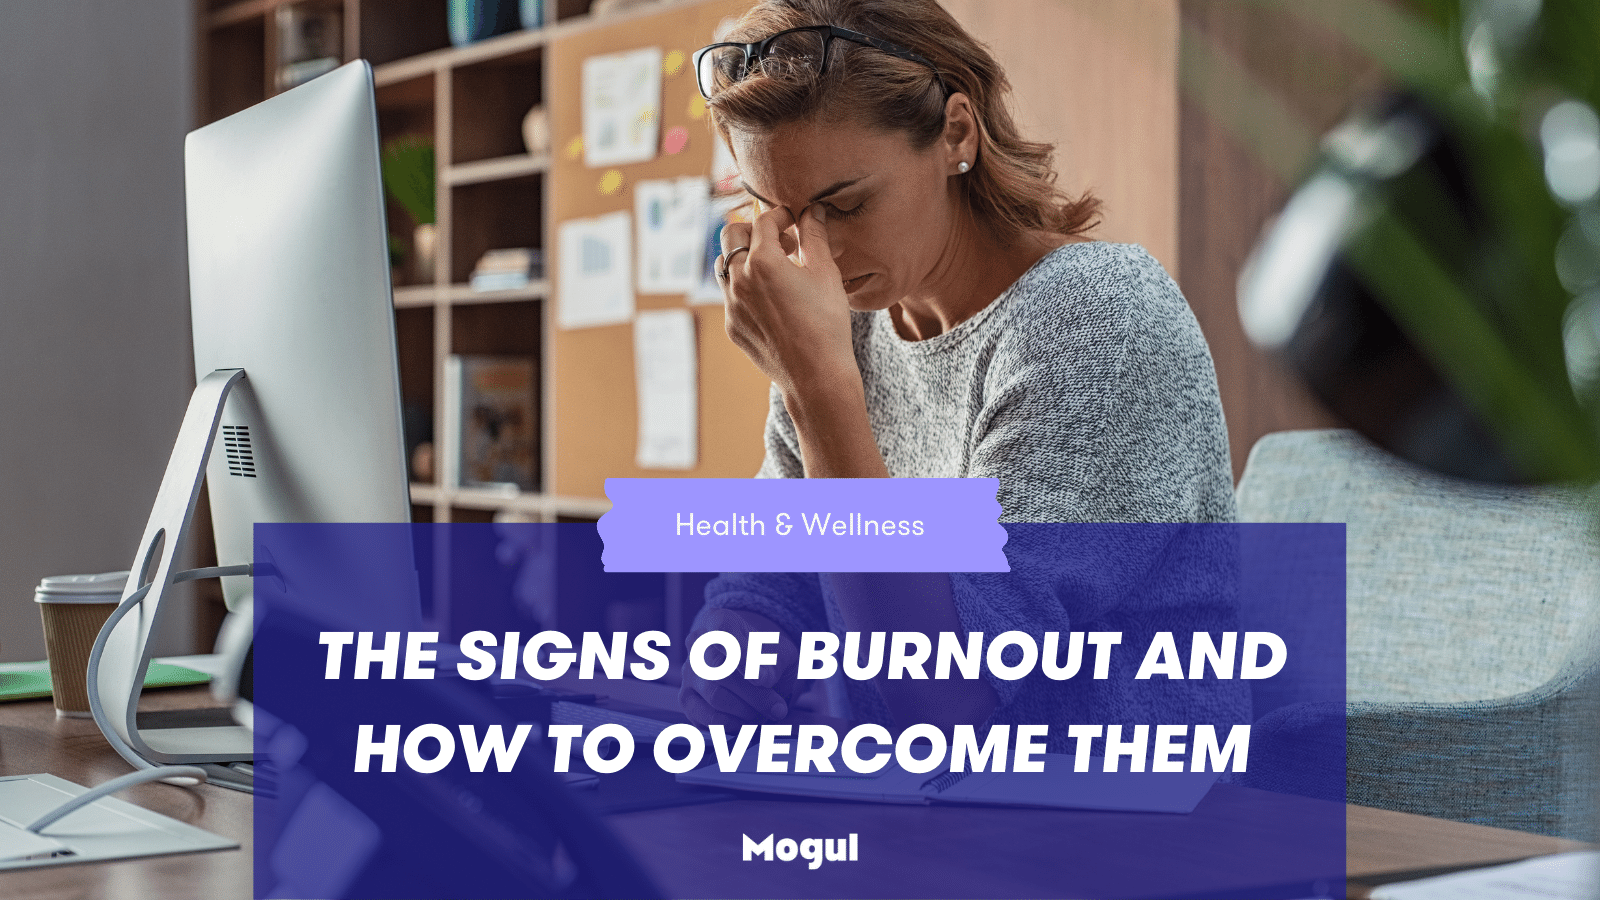 Signs of burnout and how to overcome them